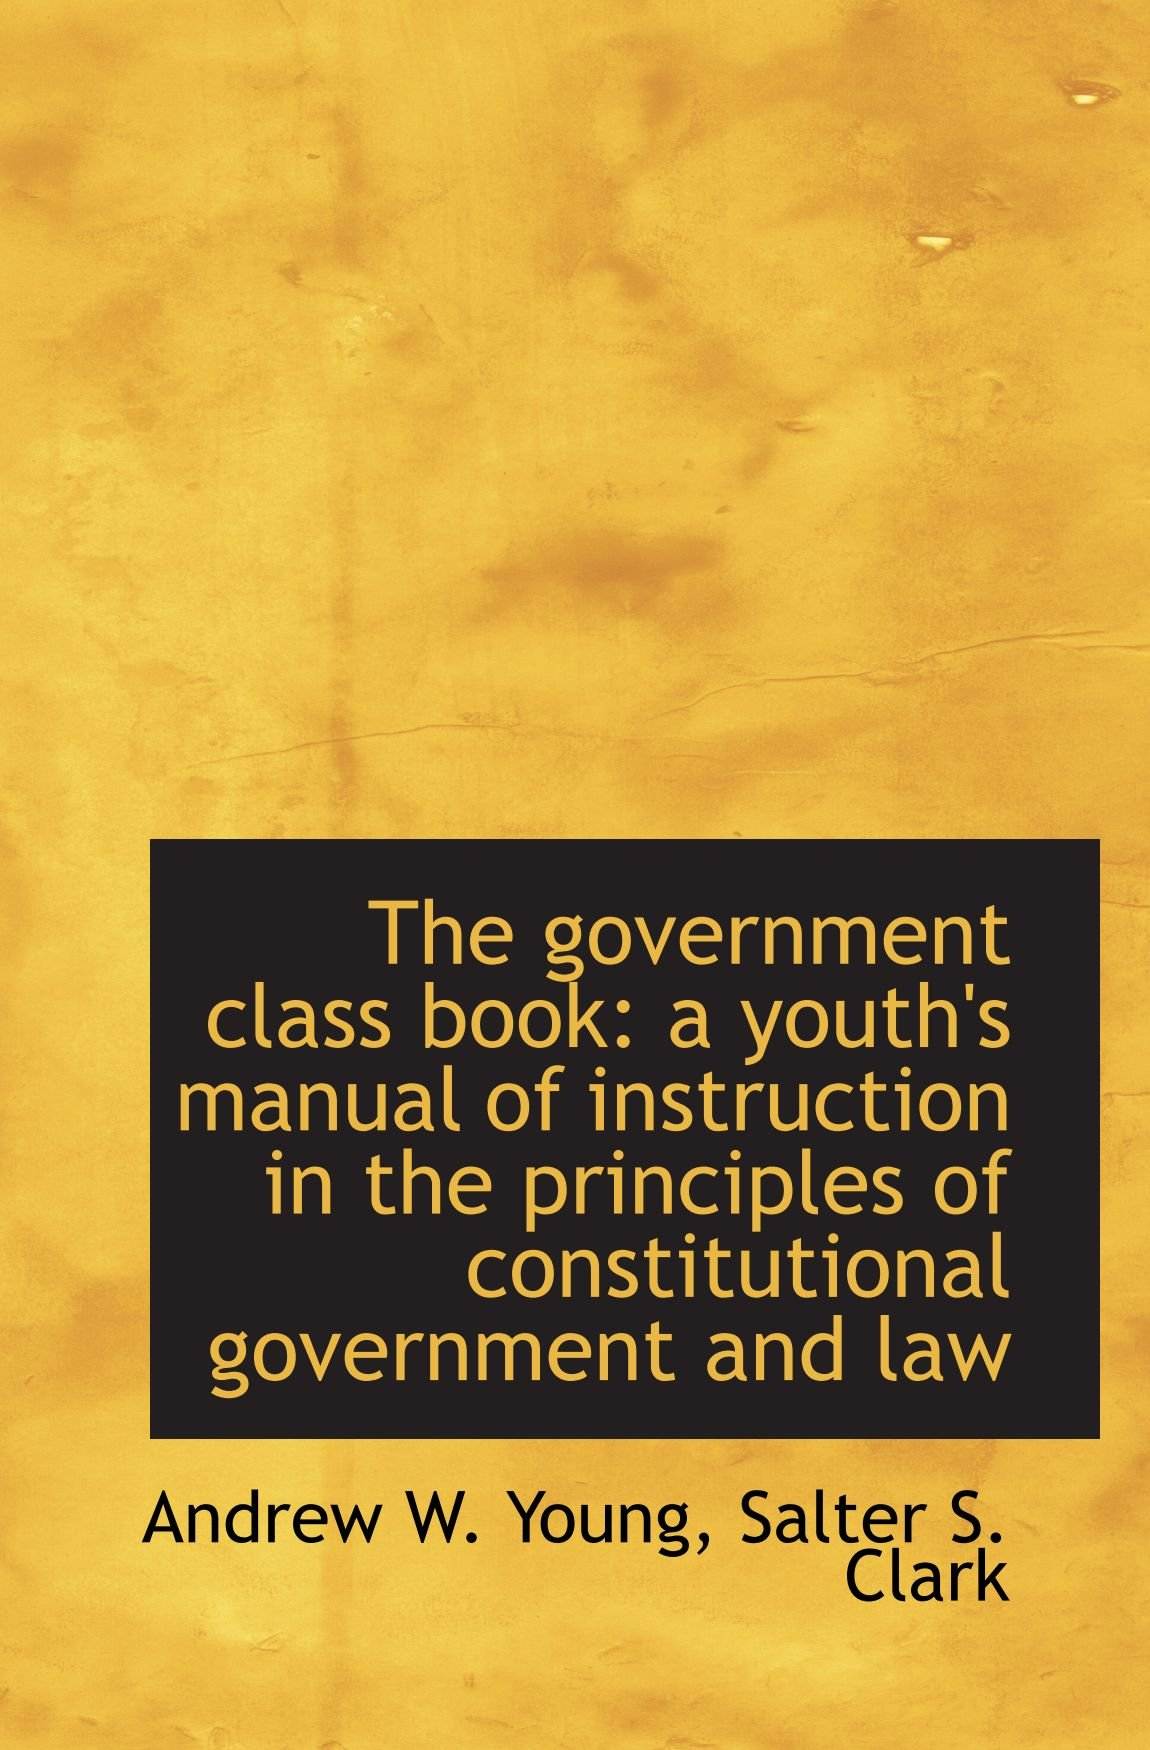 The government class book: a youth's manual of instruction in the principles  of constitutional gover: Andrew W. Young, Salter S. Clark: 9781117342290:  ...